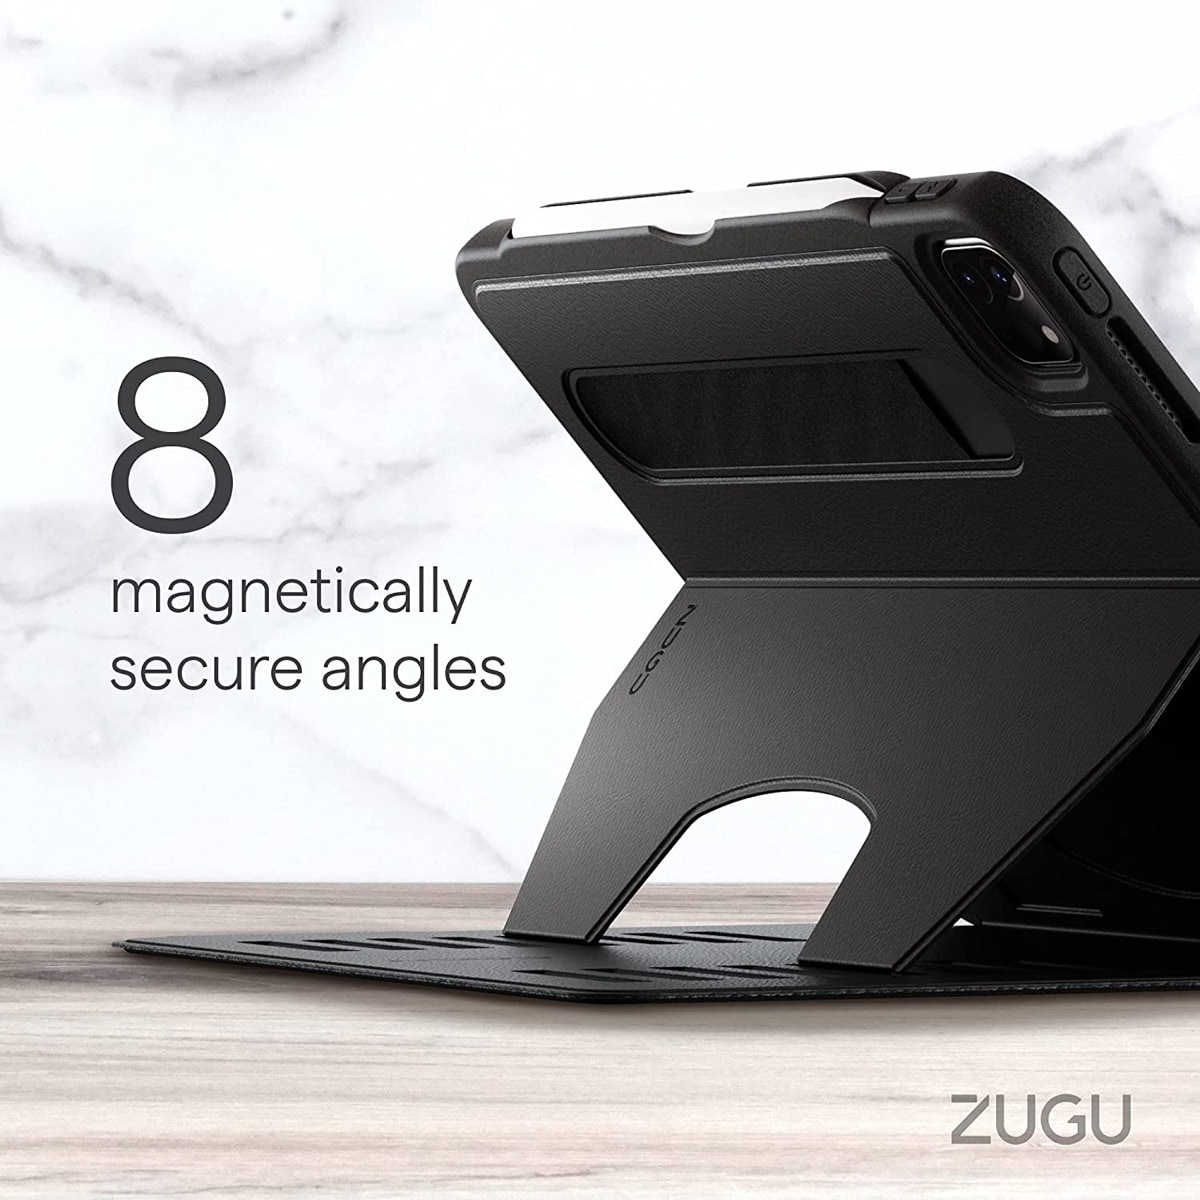 Zugu iPad Pro 11 2021 case with multiangle stand